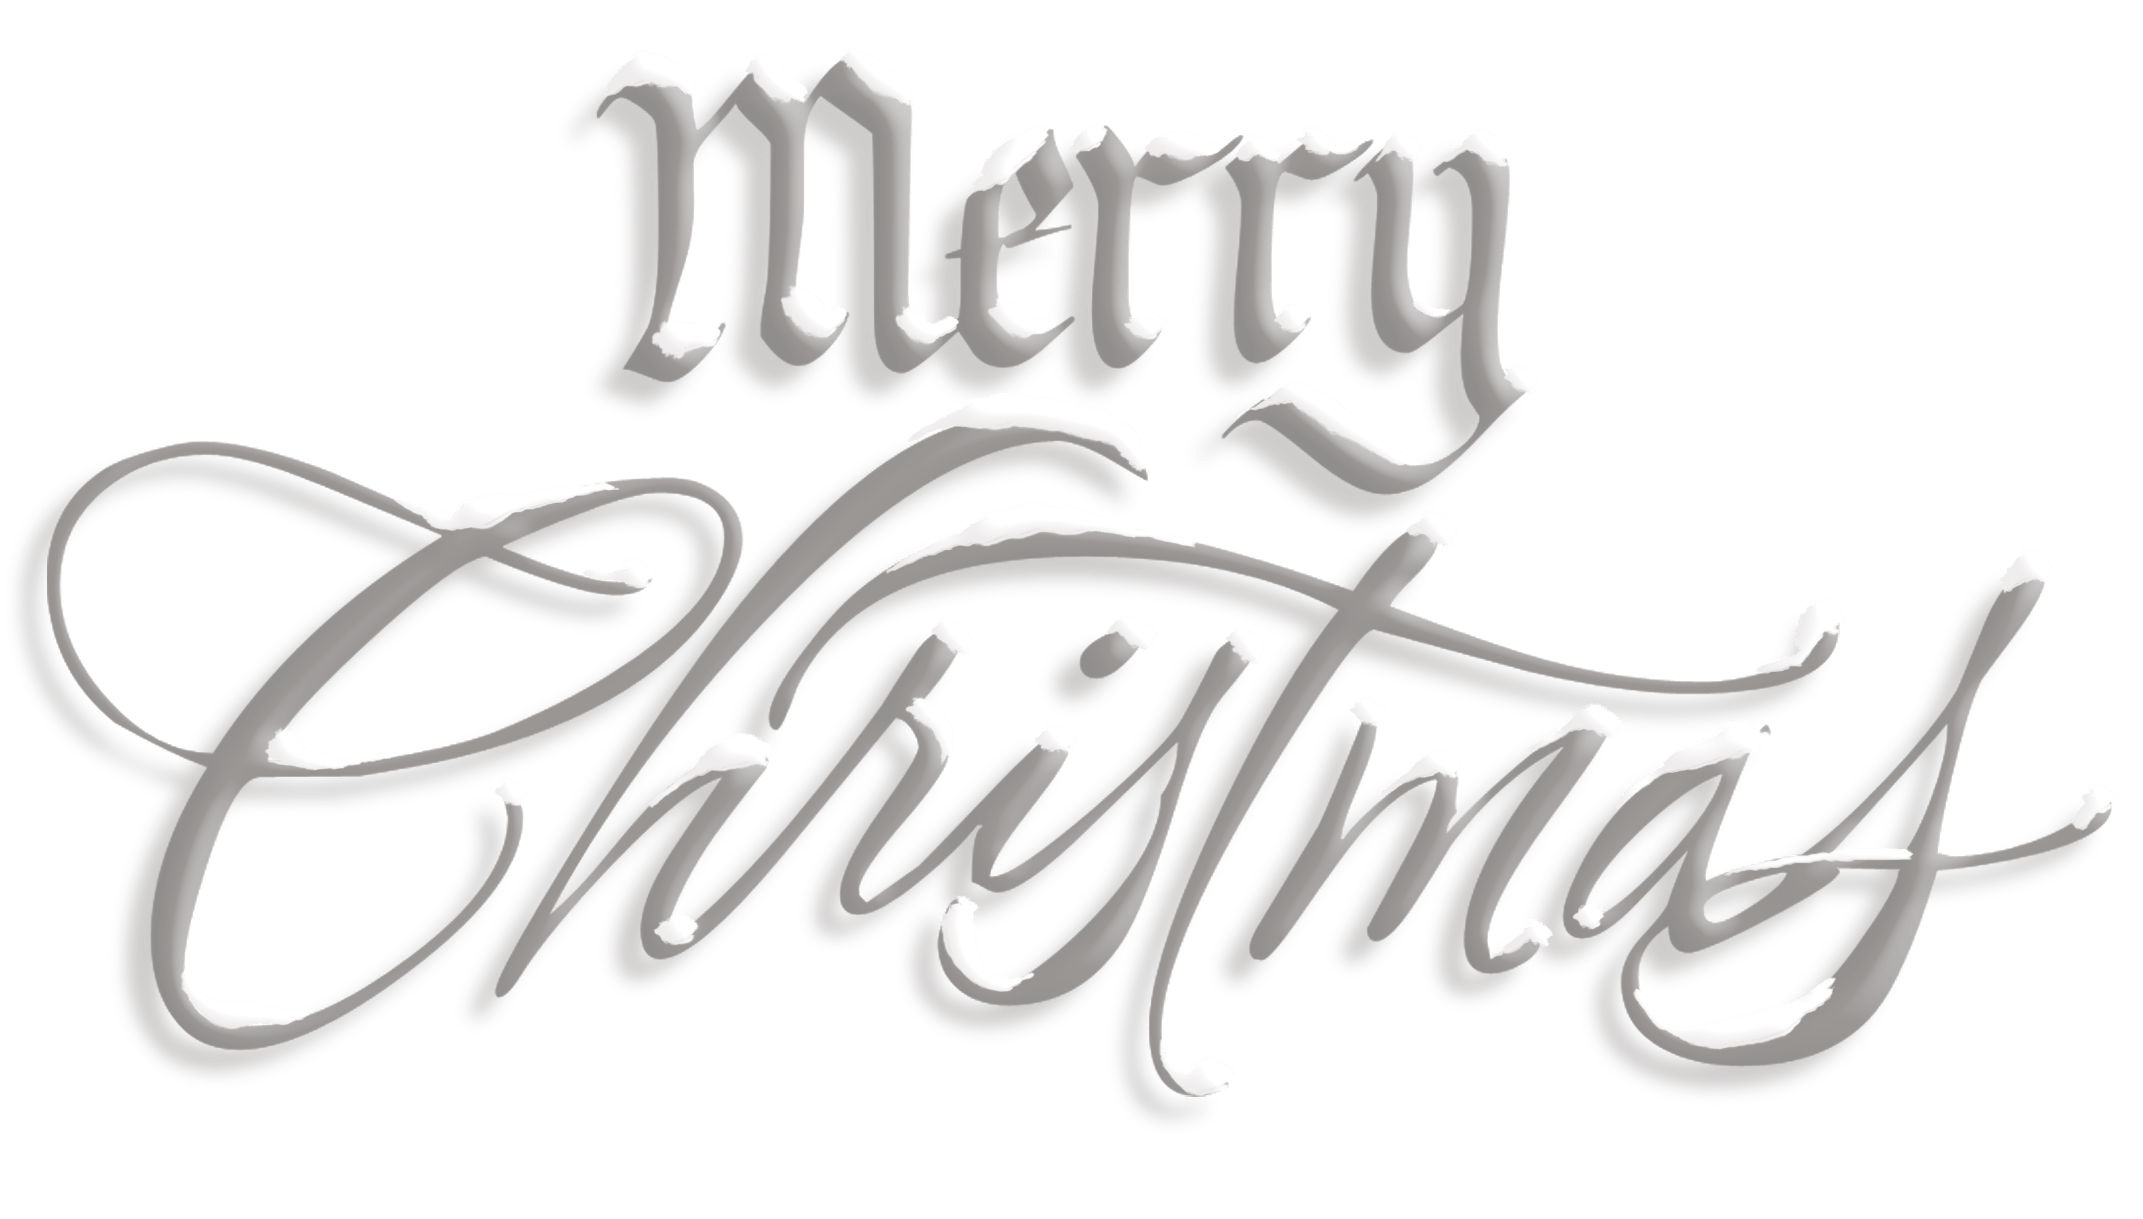 Merry Christmas Images Png.Merry Christmas Silver Snow Text Transparent Png Stickpng